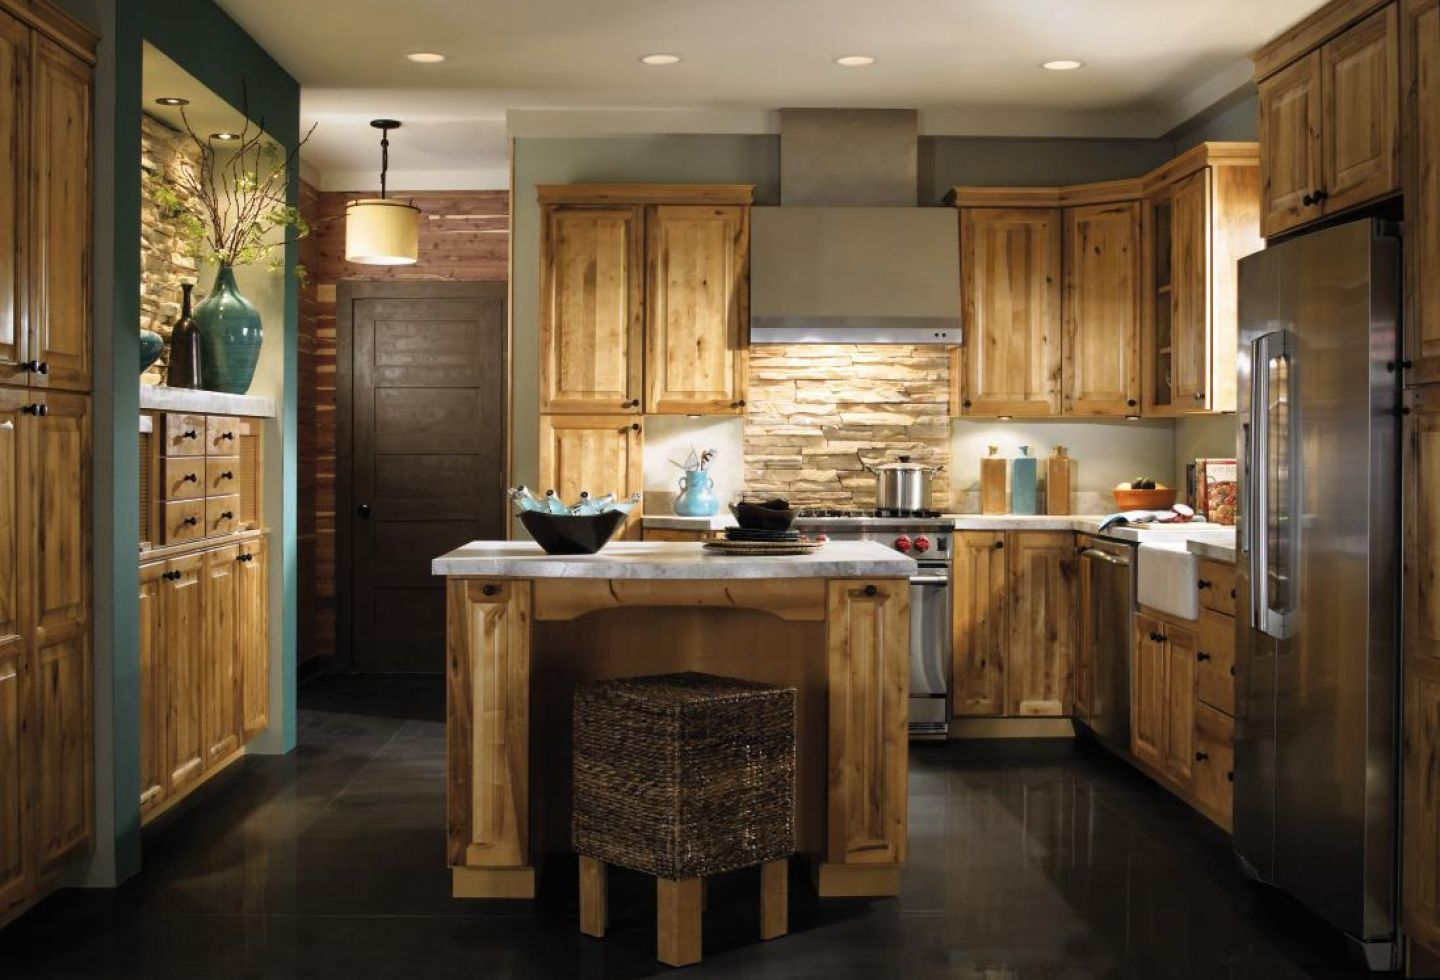 Kitchen Design Cabinet Unique Rustic Hickory Kitchen Cabinets  Cabin Hickory Cabinet Kitchen Design Ideas